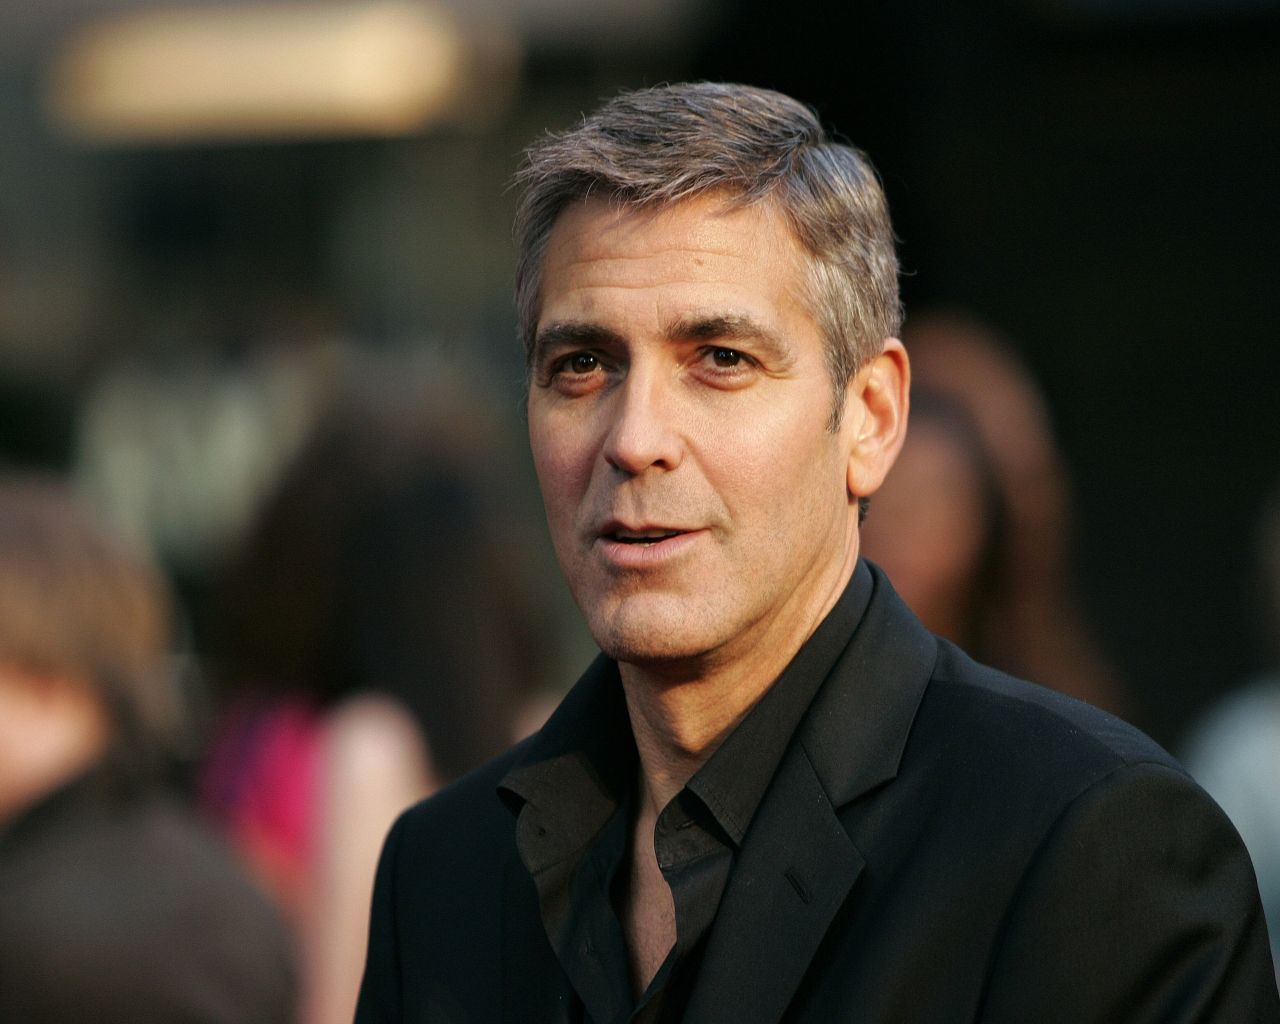 george clooney - photo #19